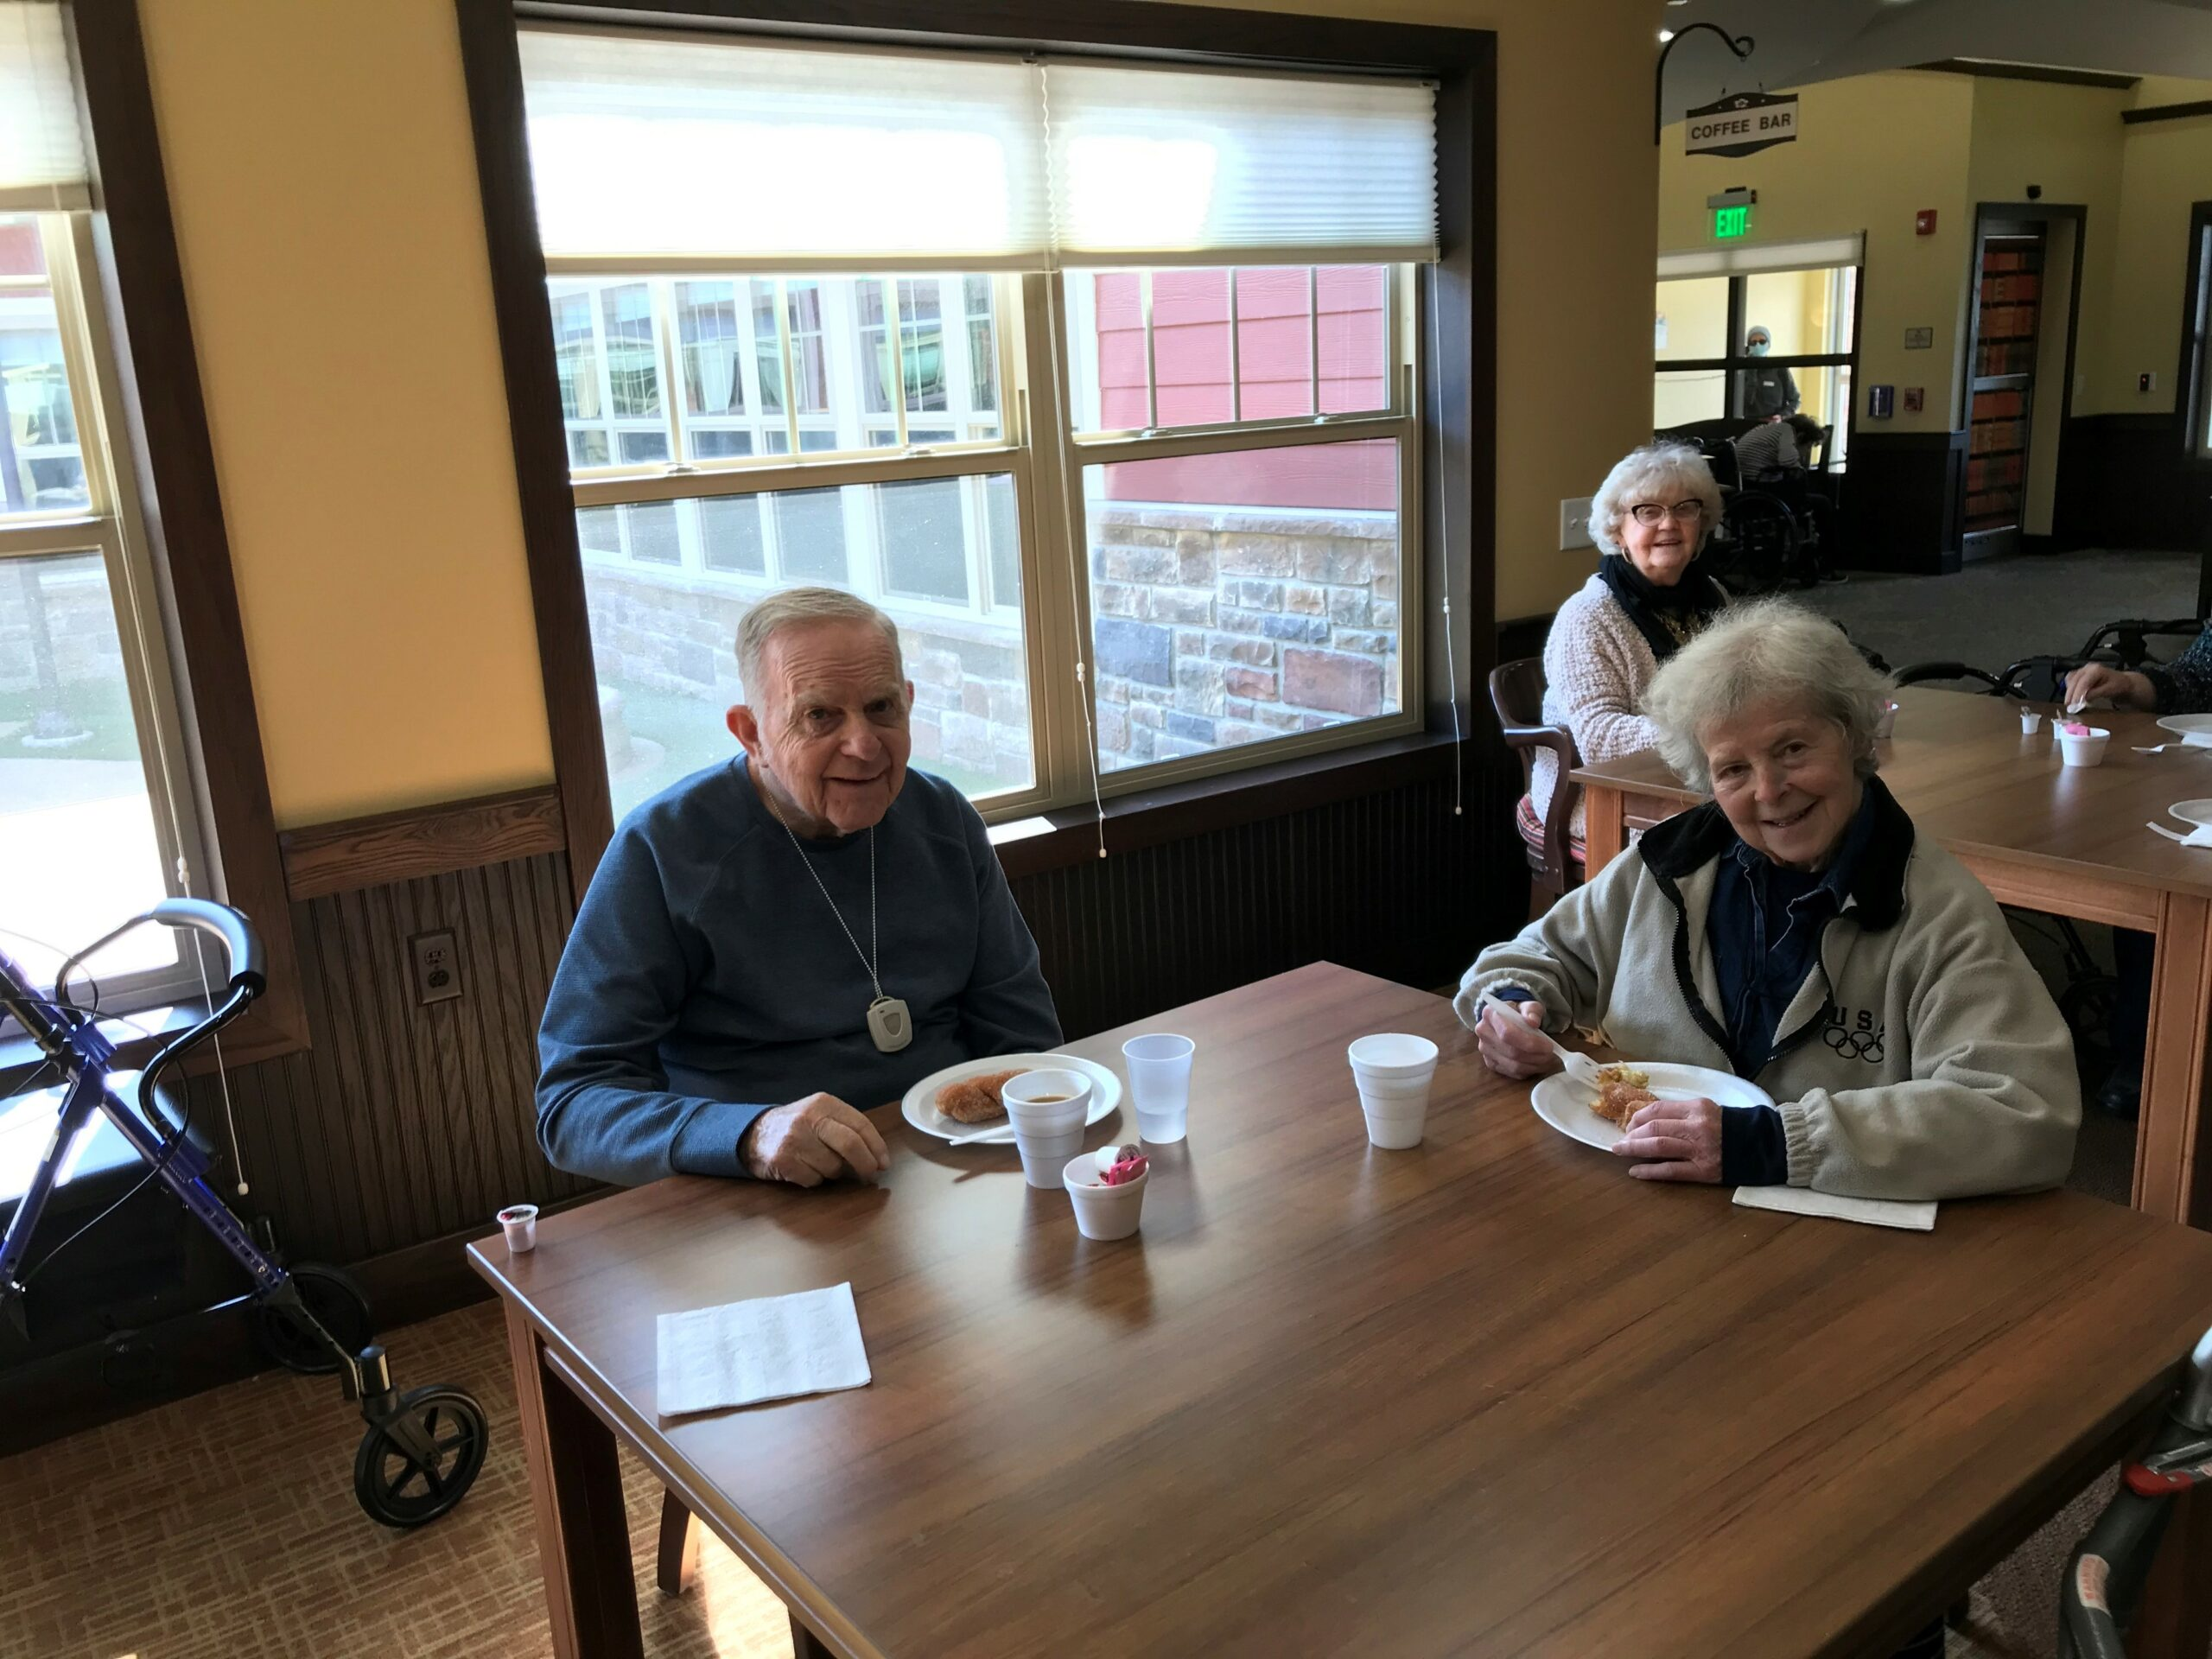 Jerry and Joan enjoying their pastries and coffee